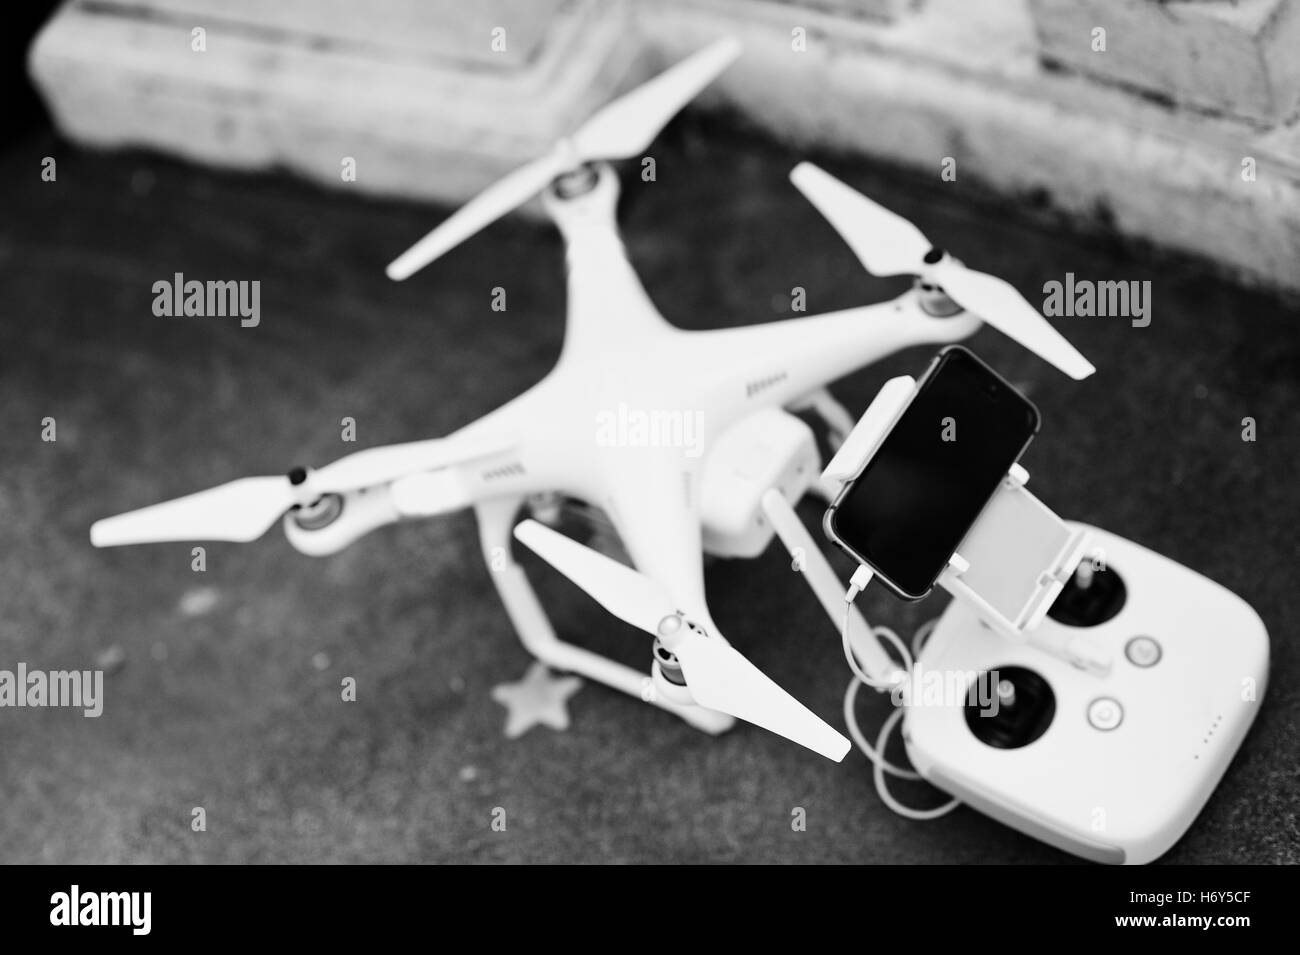 Drone quadcopter with remote control and gadget - Stock Image